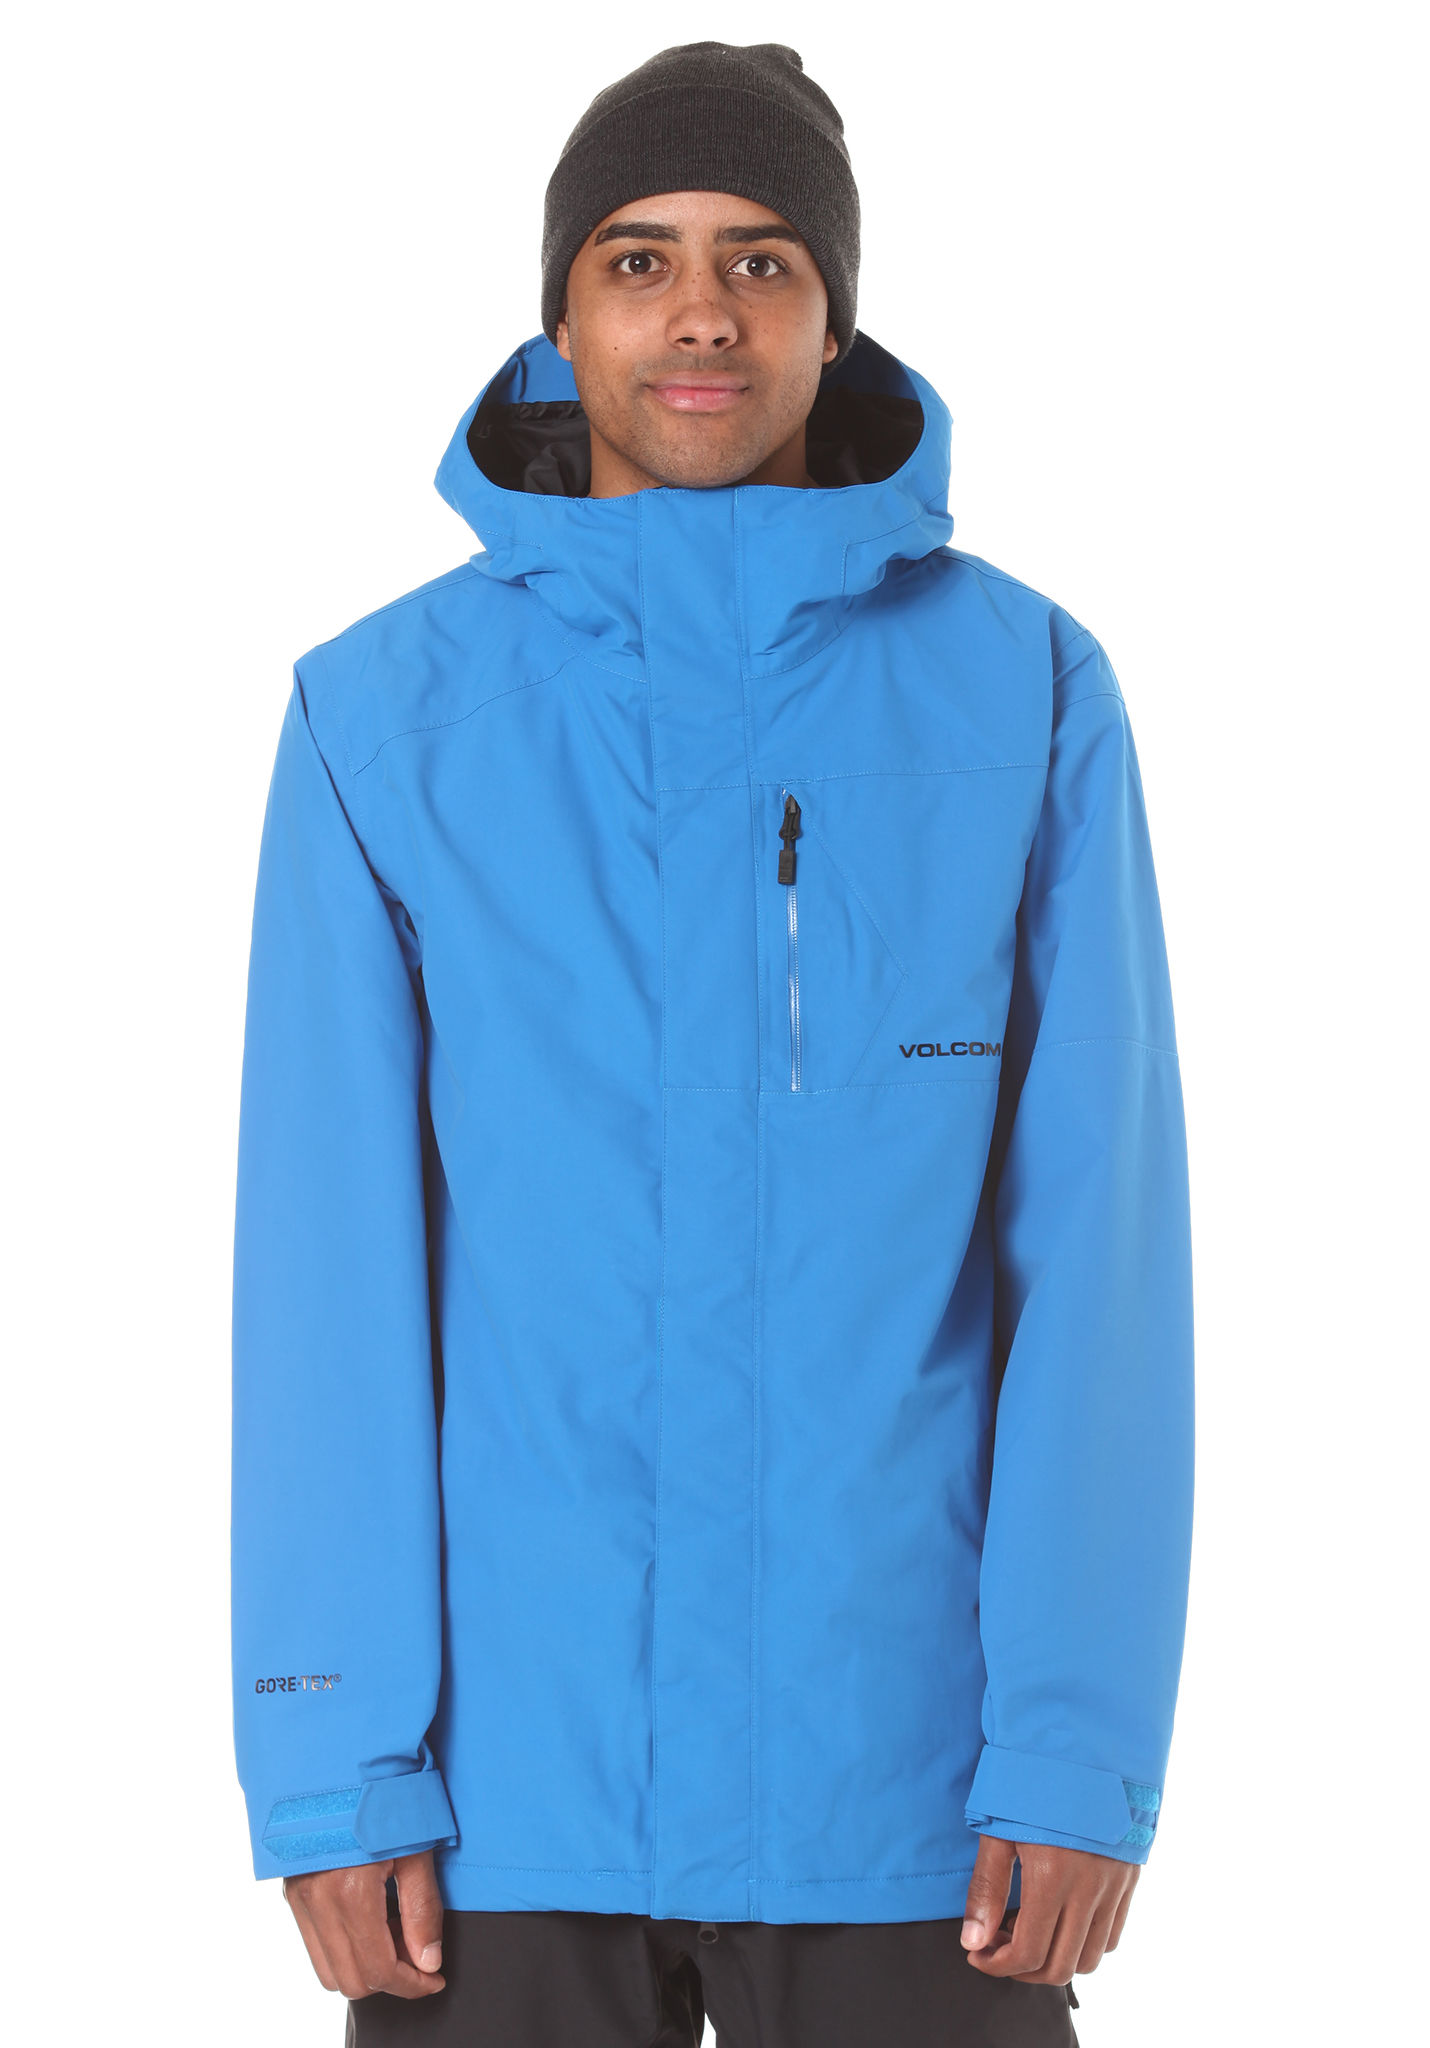 online store 9a440 db237 Volcom L Gore-Tex - Snowboard Jacket for Men - Blue